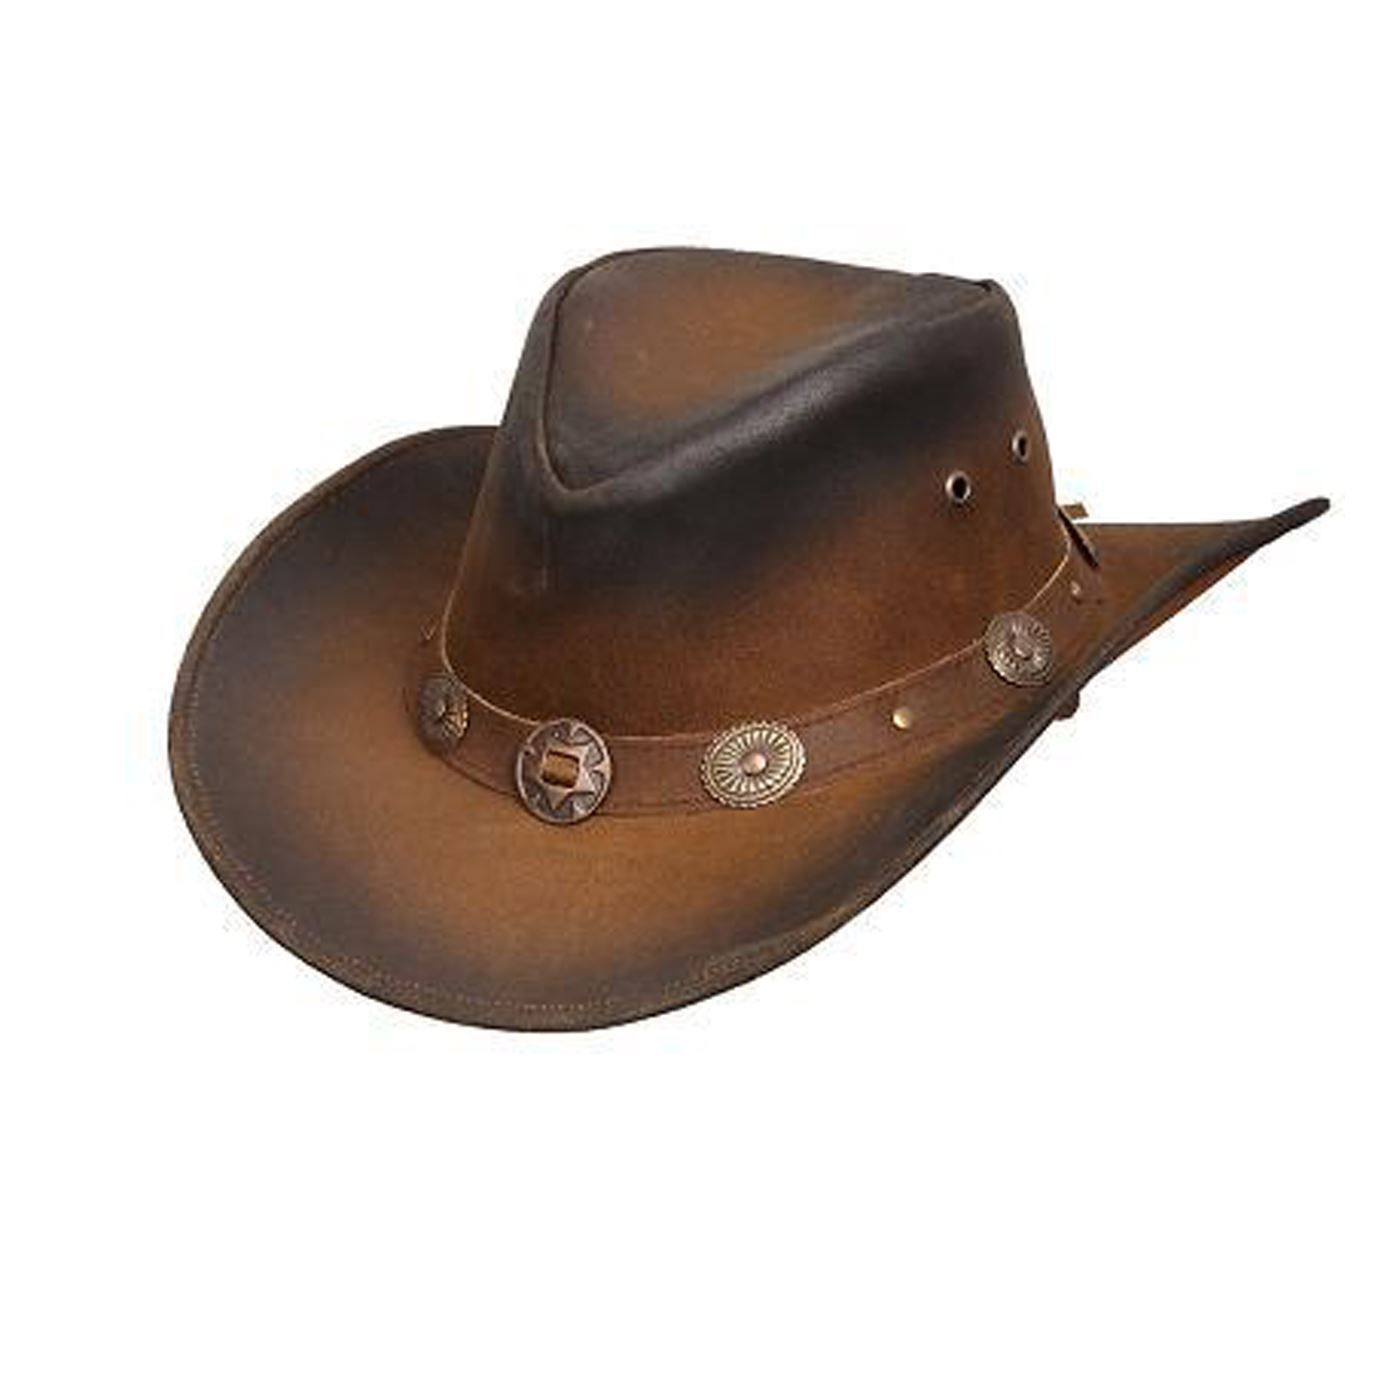 Authentic Benmore Outback Distressed Leather Australian Style Western Cowboy Hat